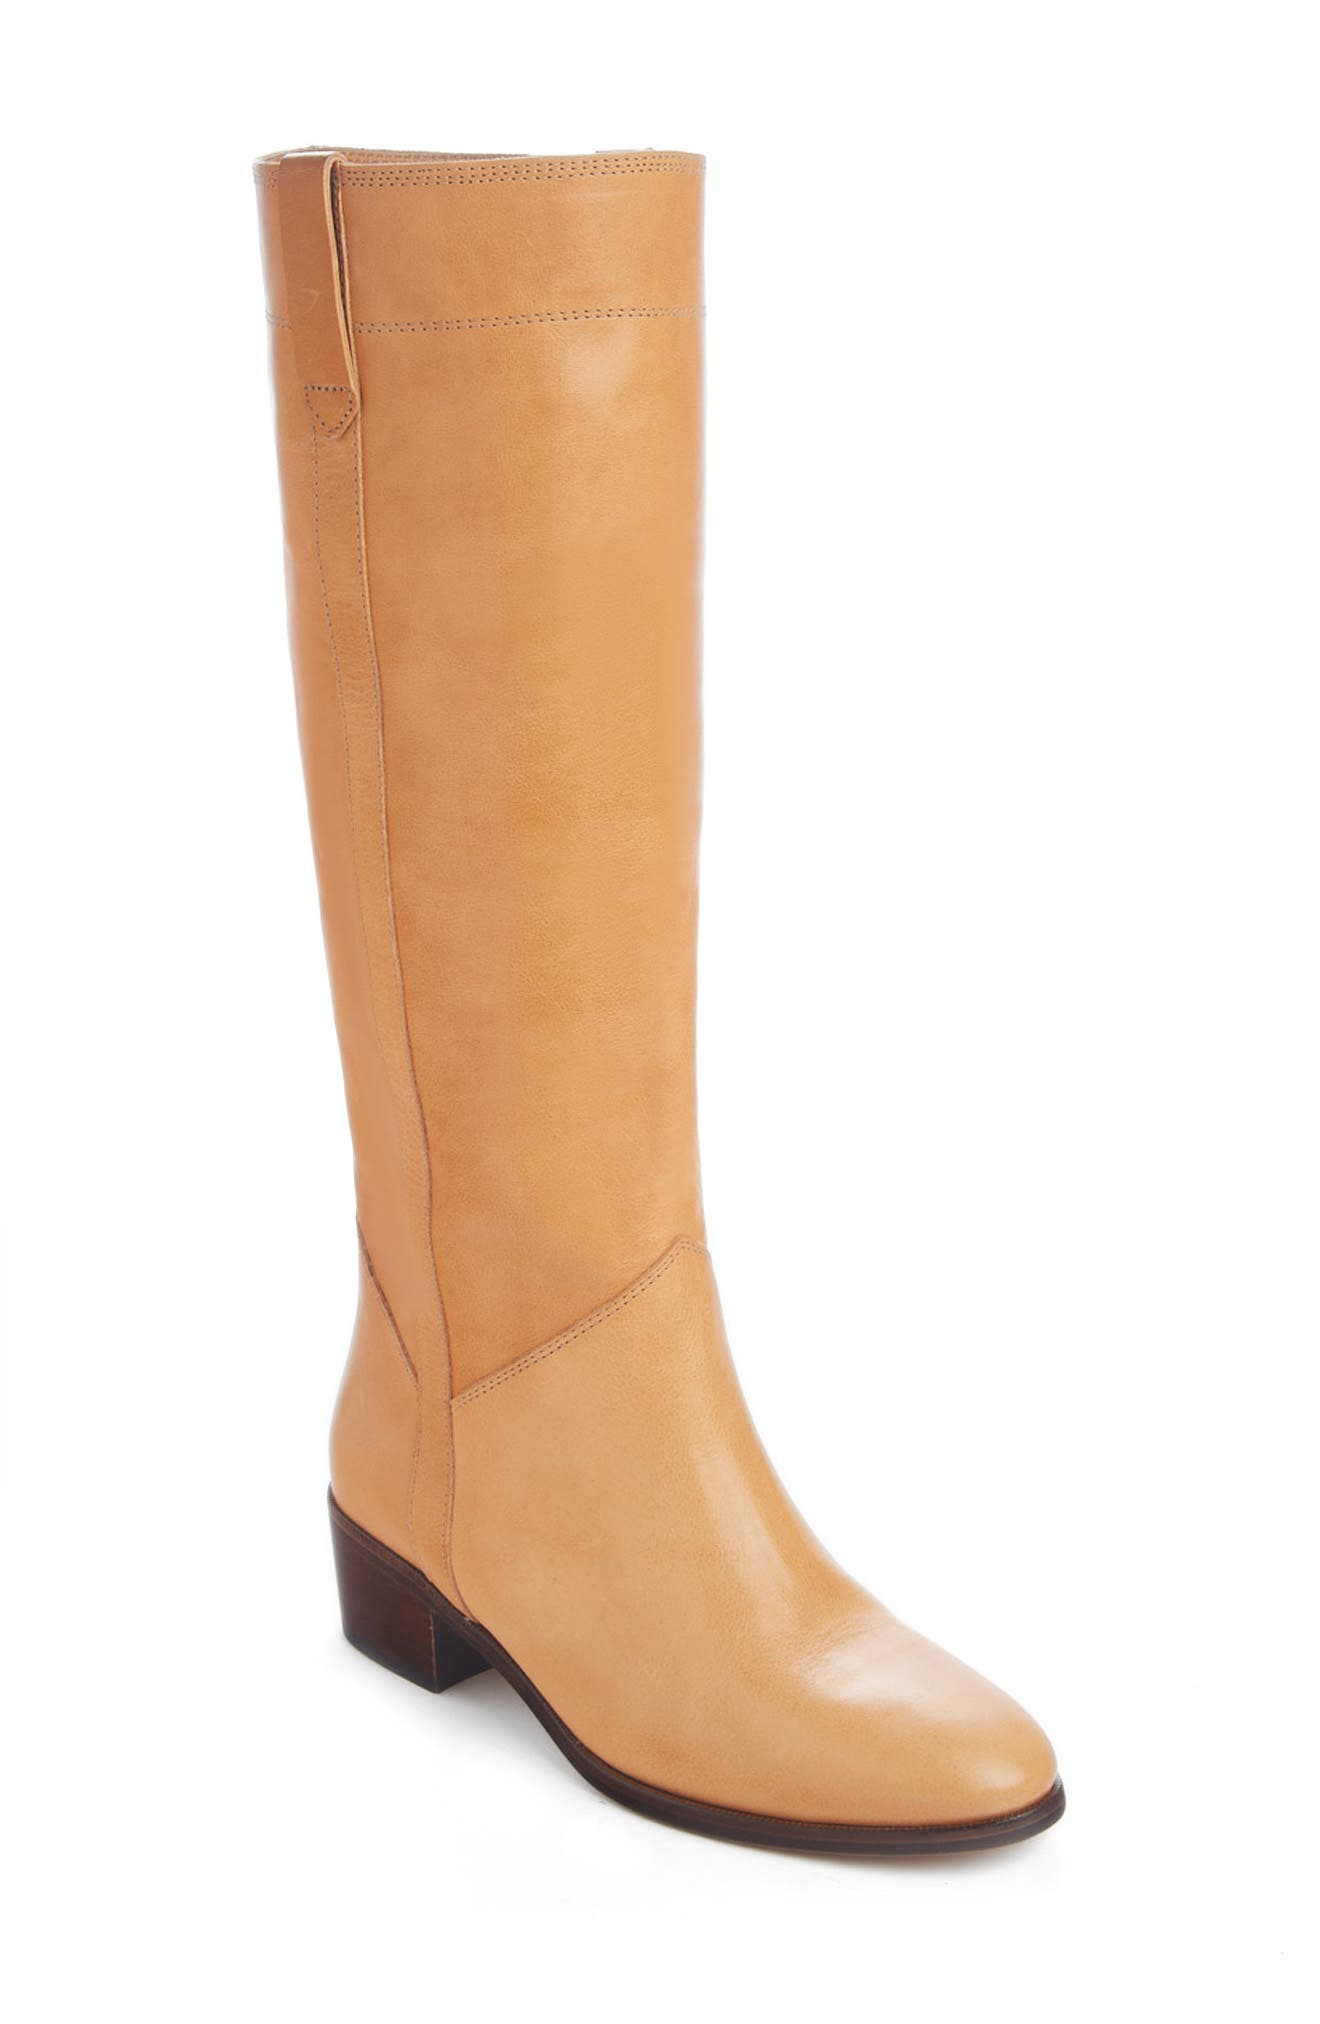 Pre-order this style today! Add to Shopping Bag to view approximate ship date. You\\\'ll be charged only when your item ships. Made from calfskin leather in a perfect, pair-with-everything hue, this knee-high boot with topstitched details and pull tabs is sure to be on heavy rotation. Style Name: Isabel Marant Mewis Knee High Boot (Women). Style Number: 6080090. Available in stores.